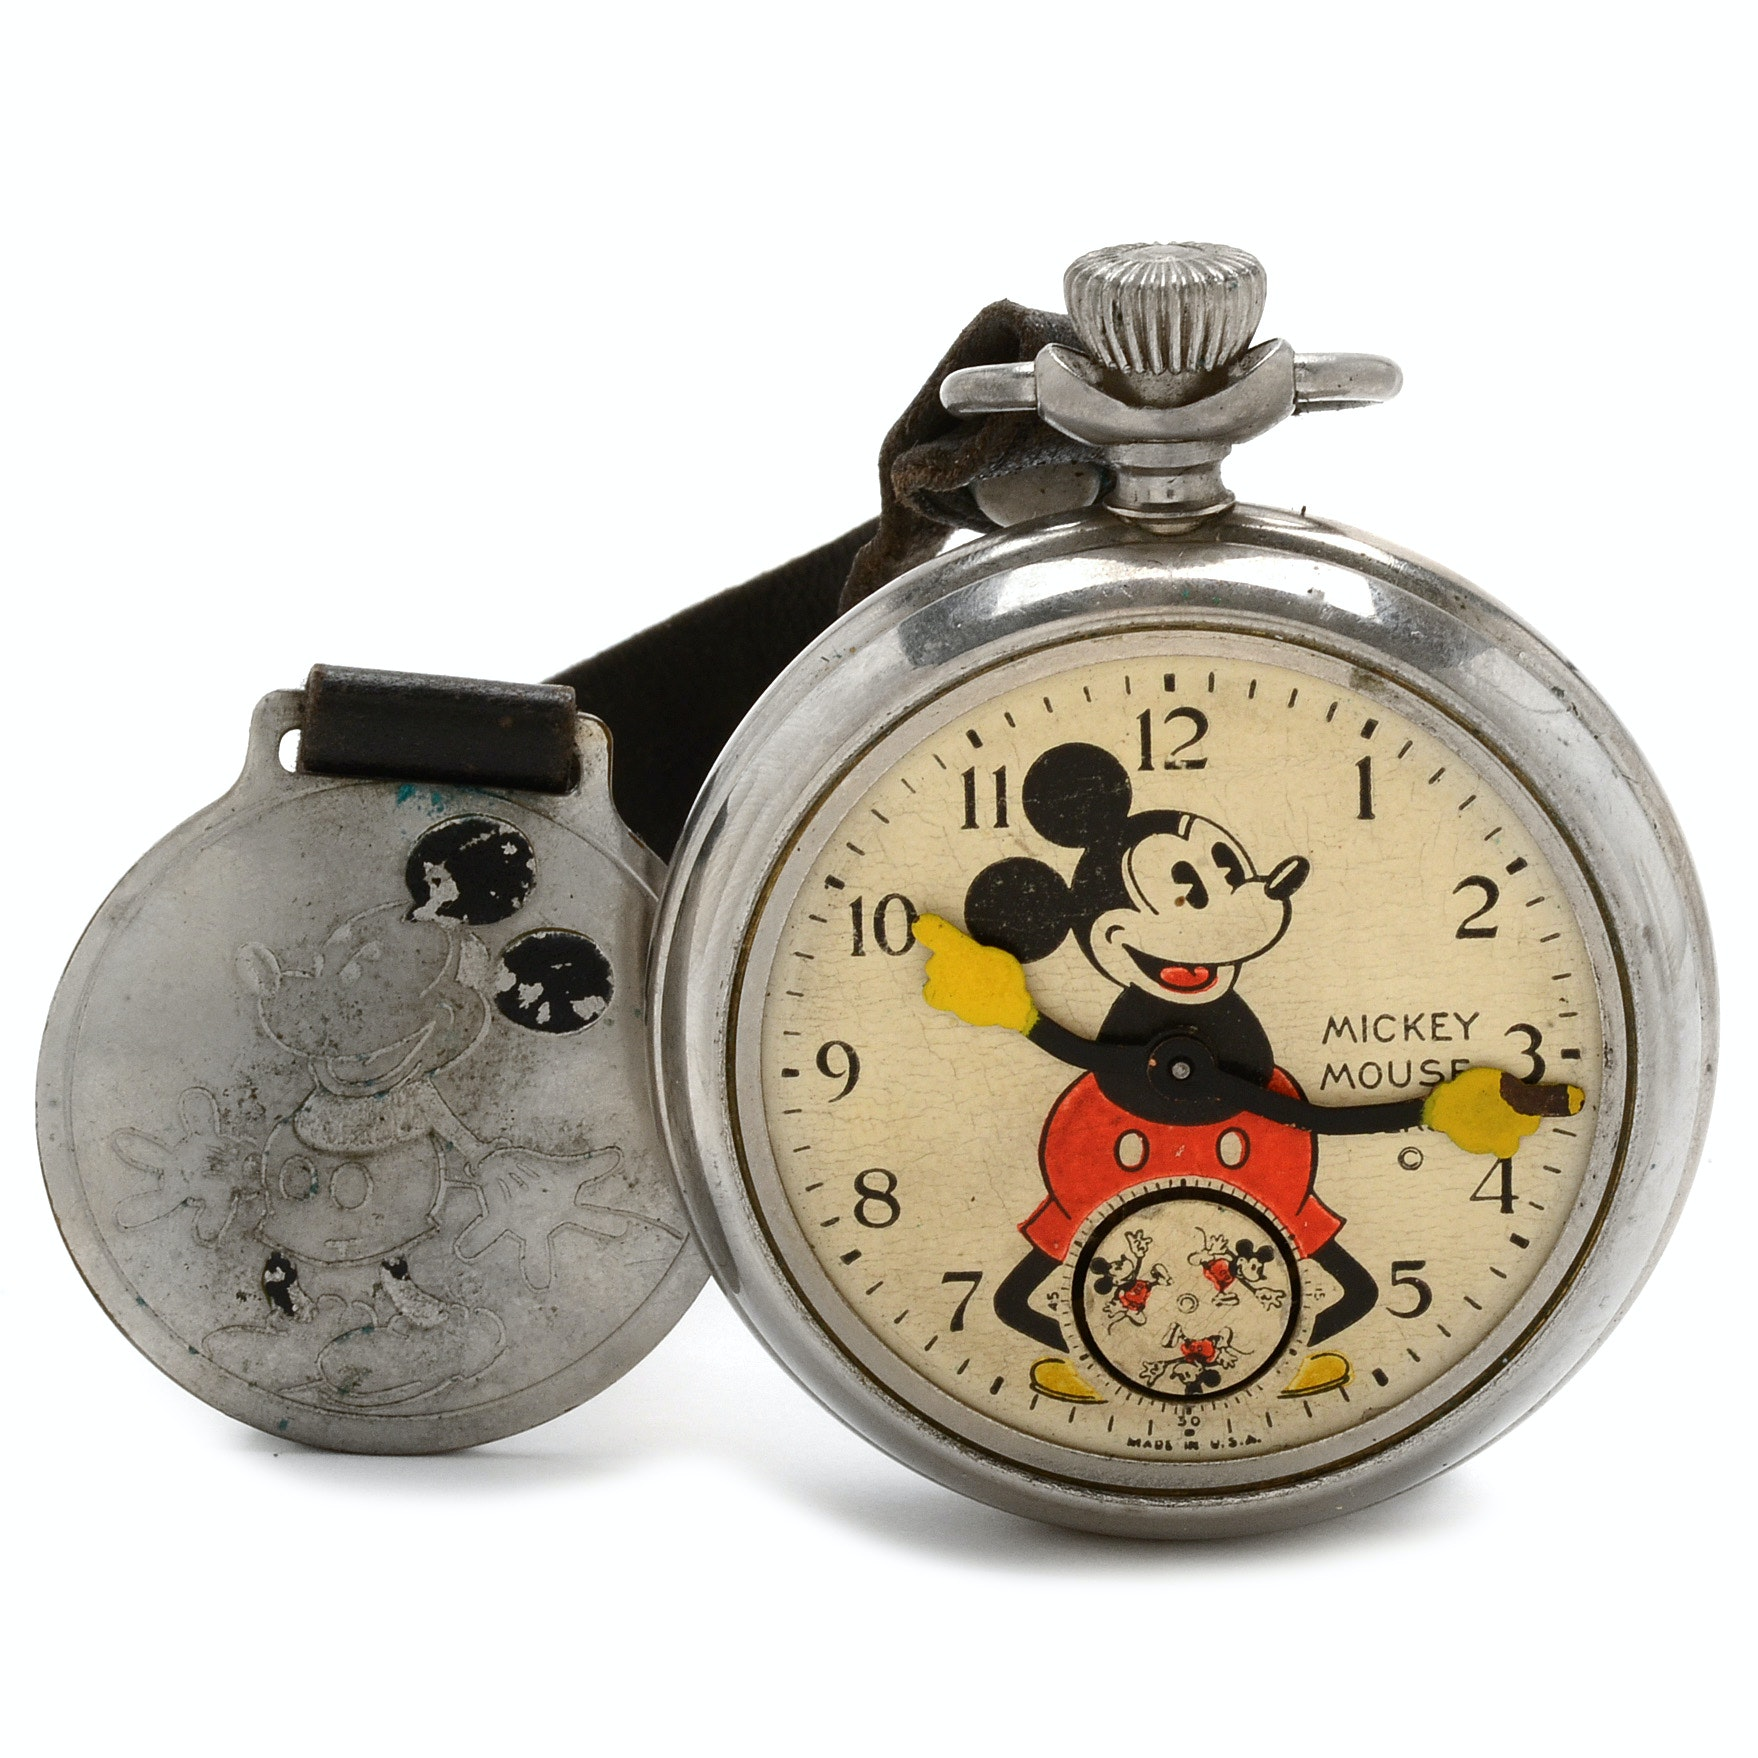 1930s Ingersoll Pie-Eyed Mickey Mouse Pocket Watch